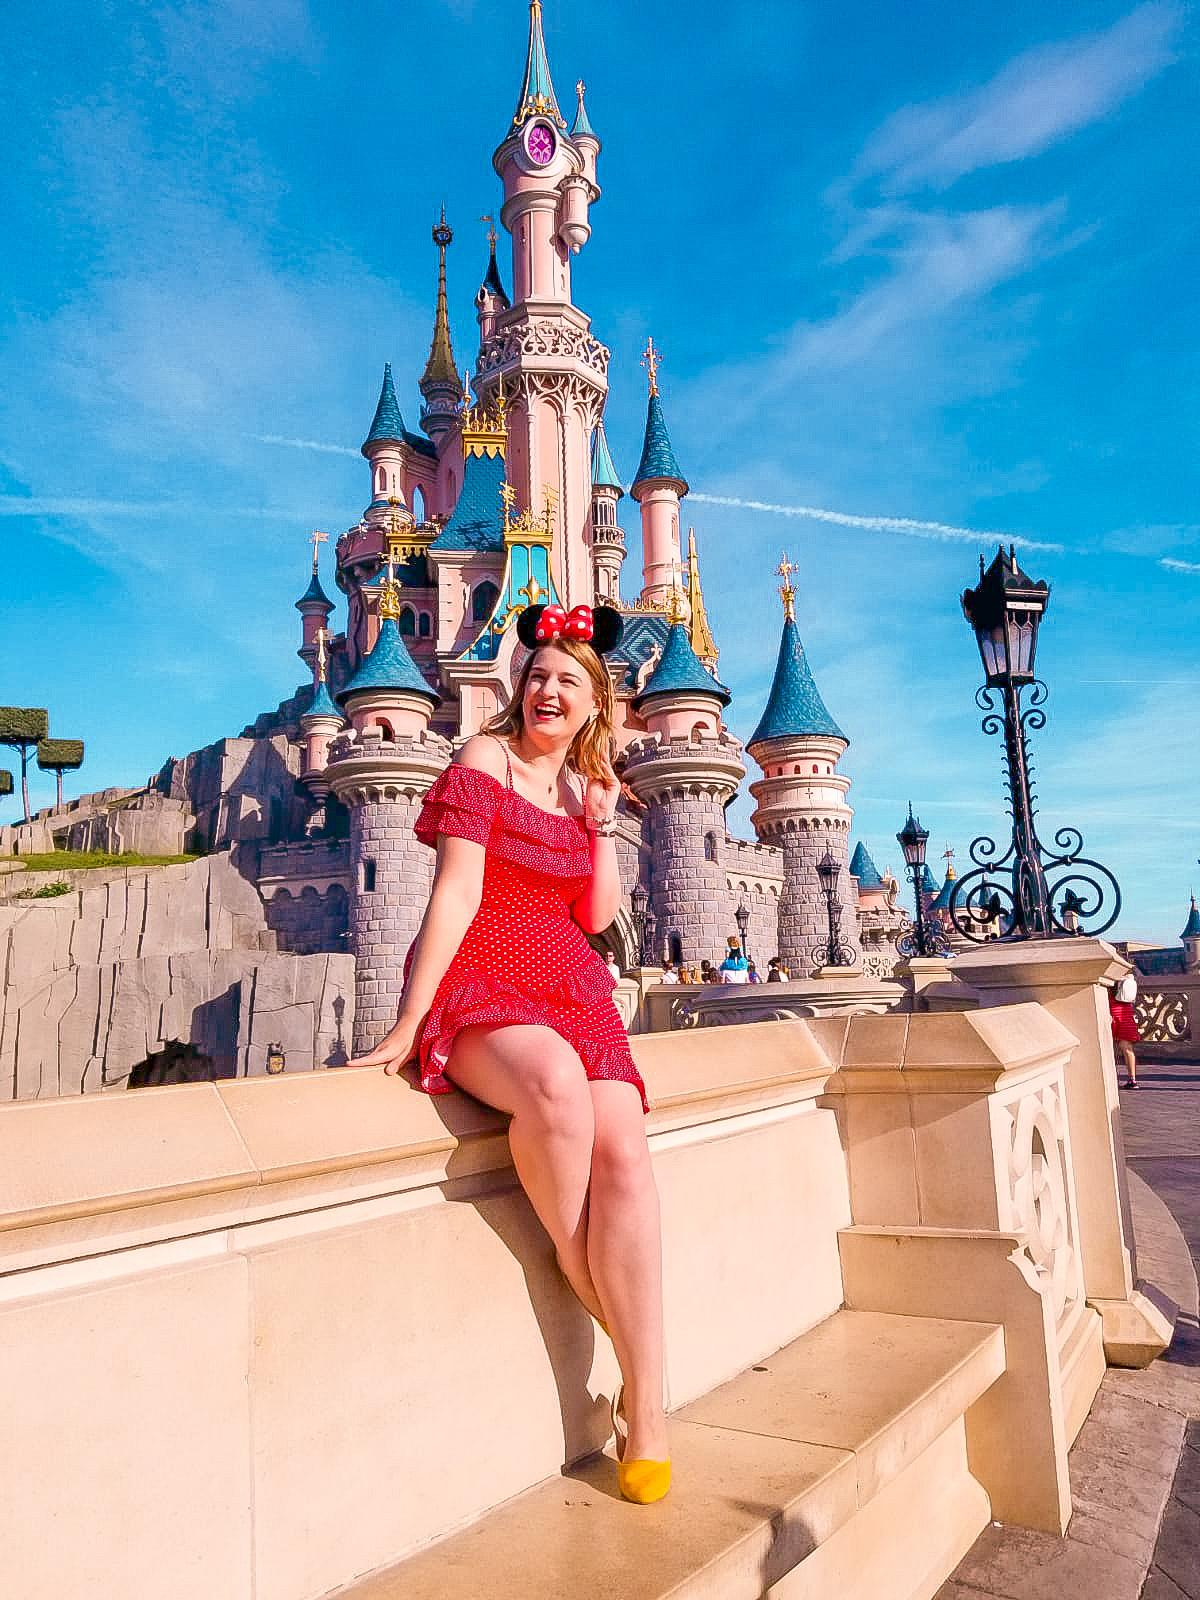 Sleeping Beauty Castle - one of the most Instagrammable spots at Disneyland Paris